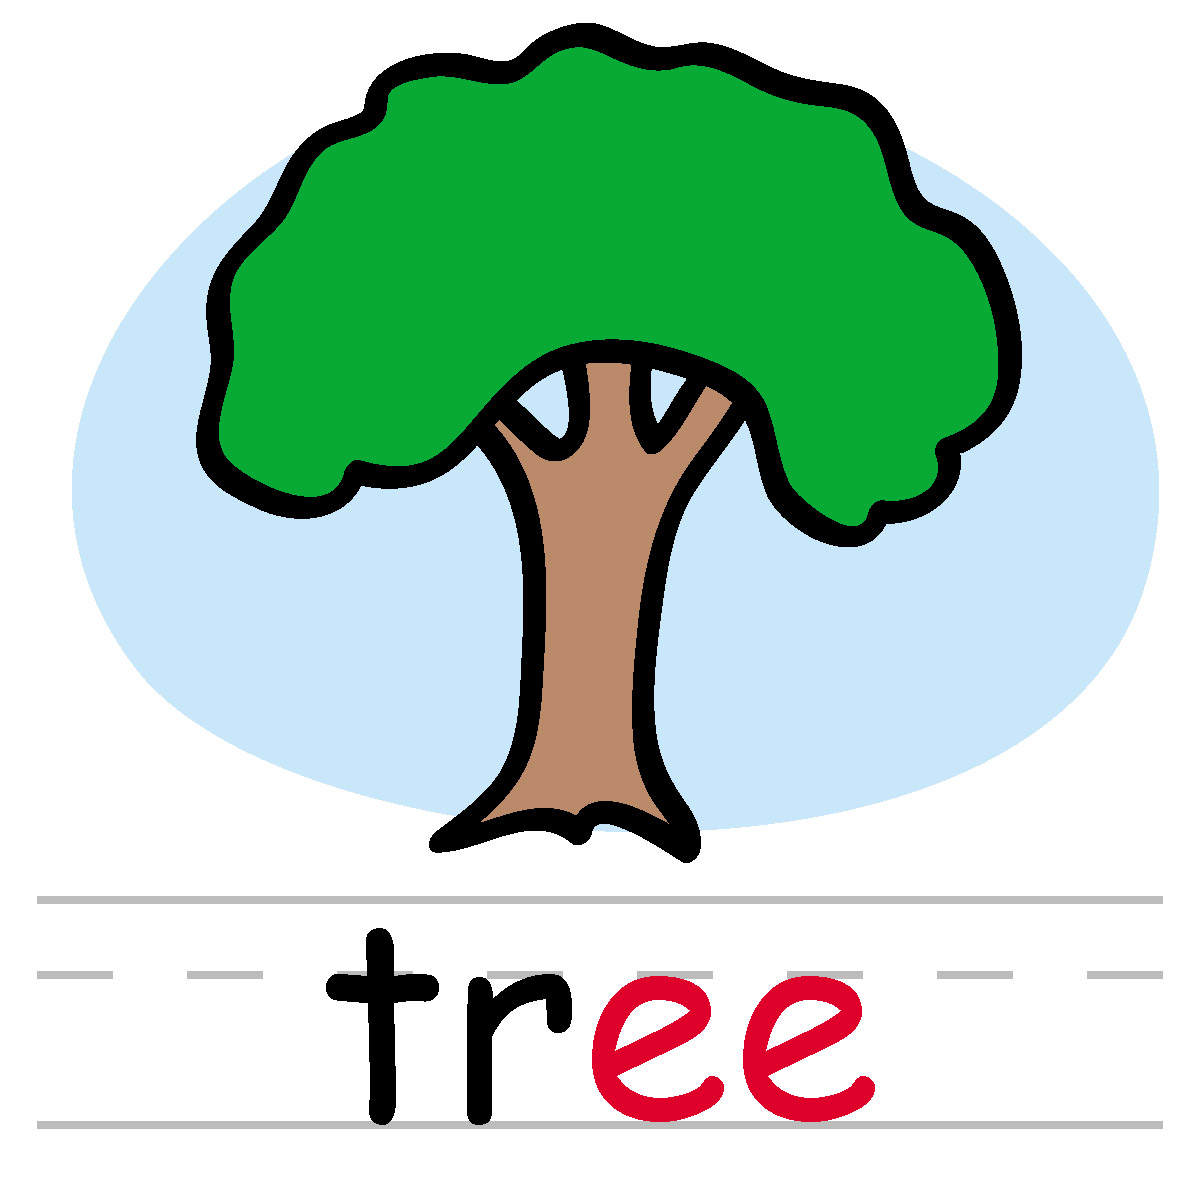 oxford reading tree clip art download - photo #39